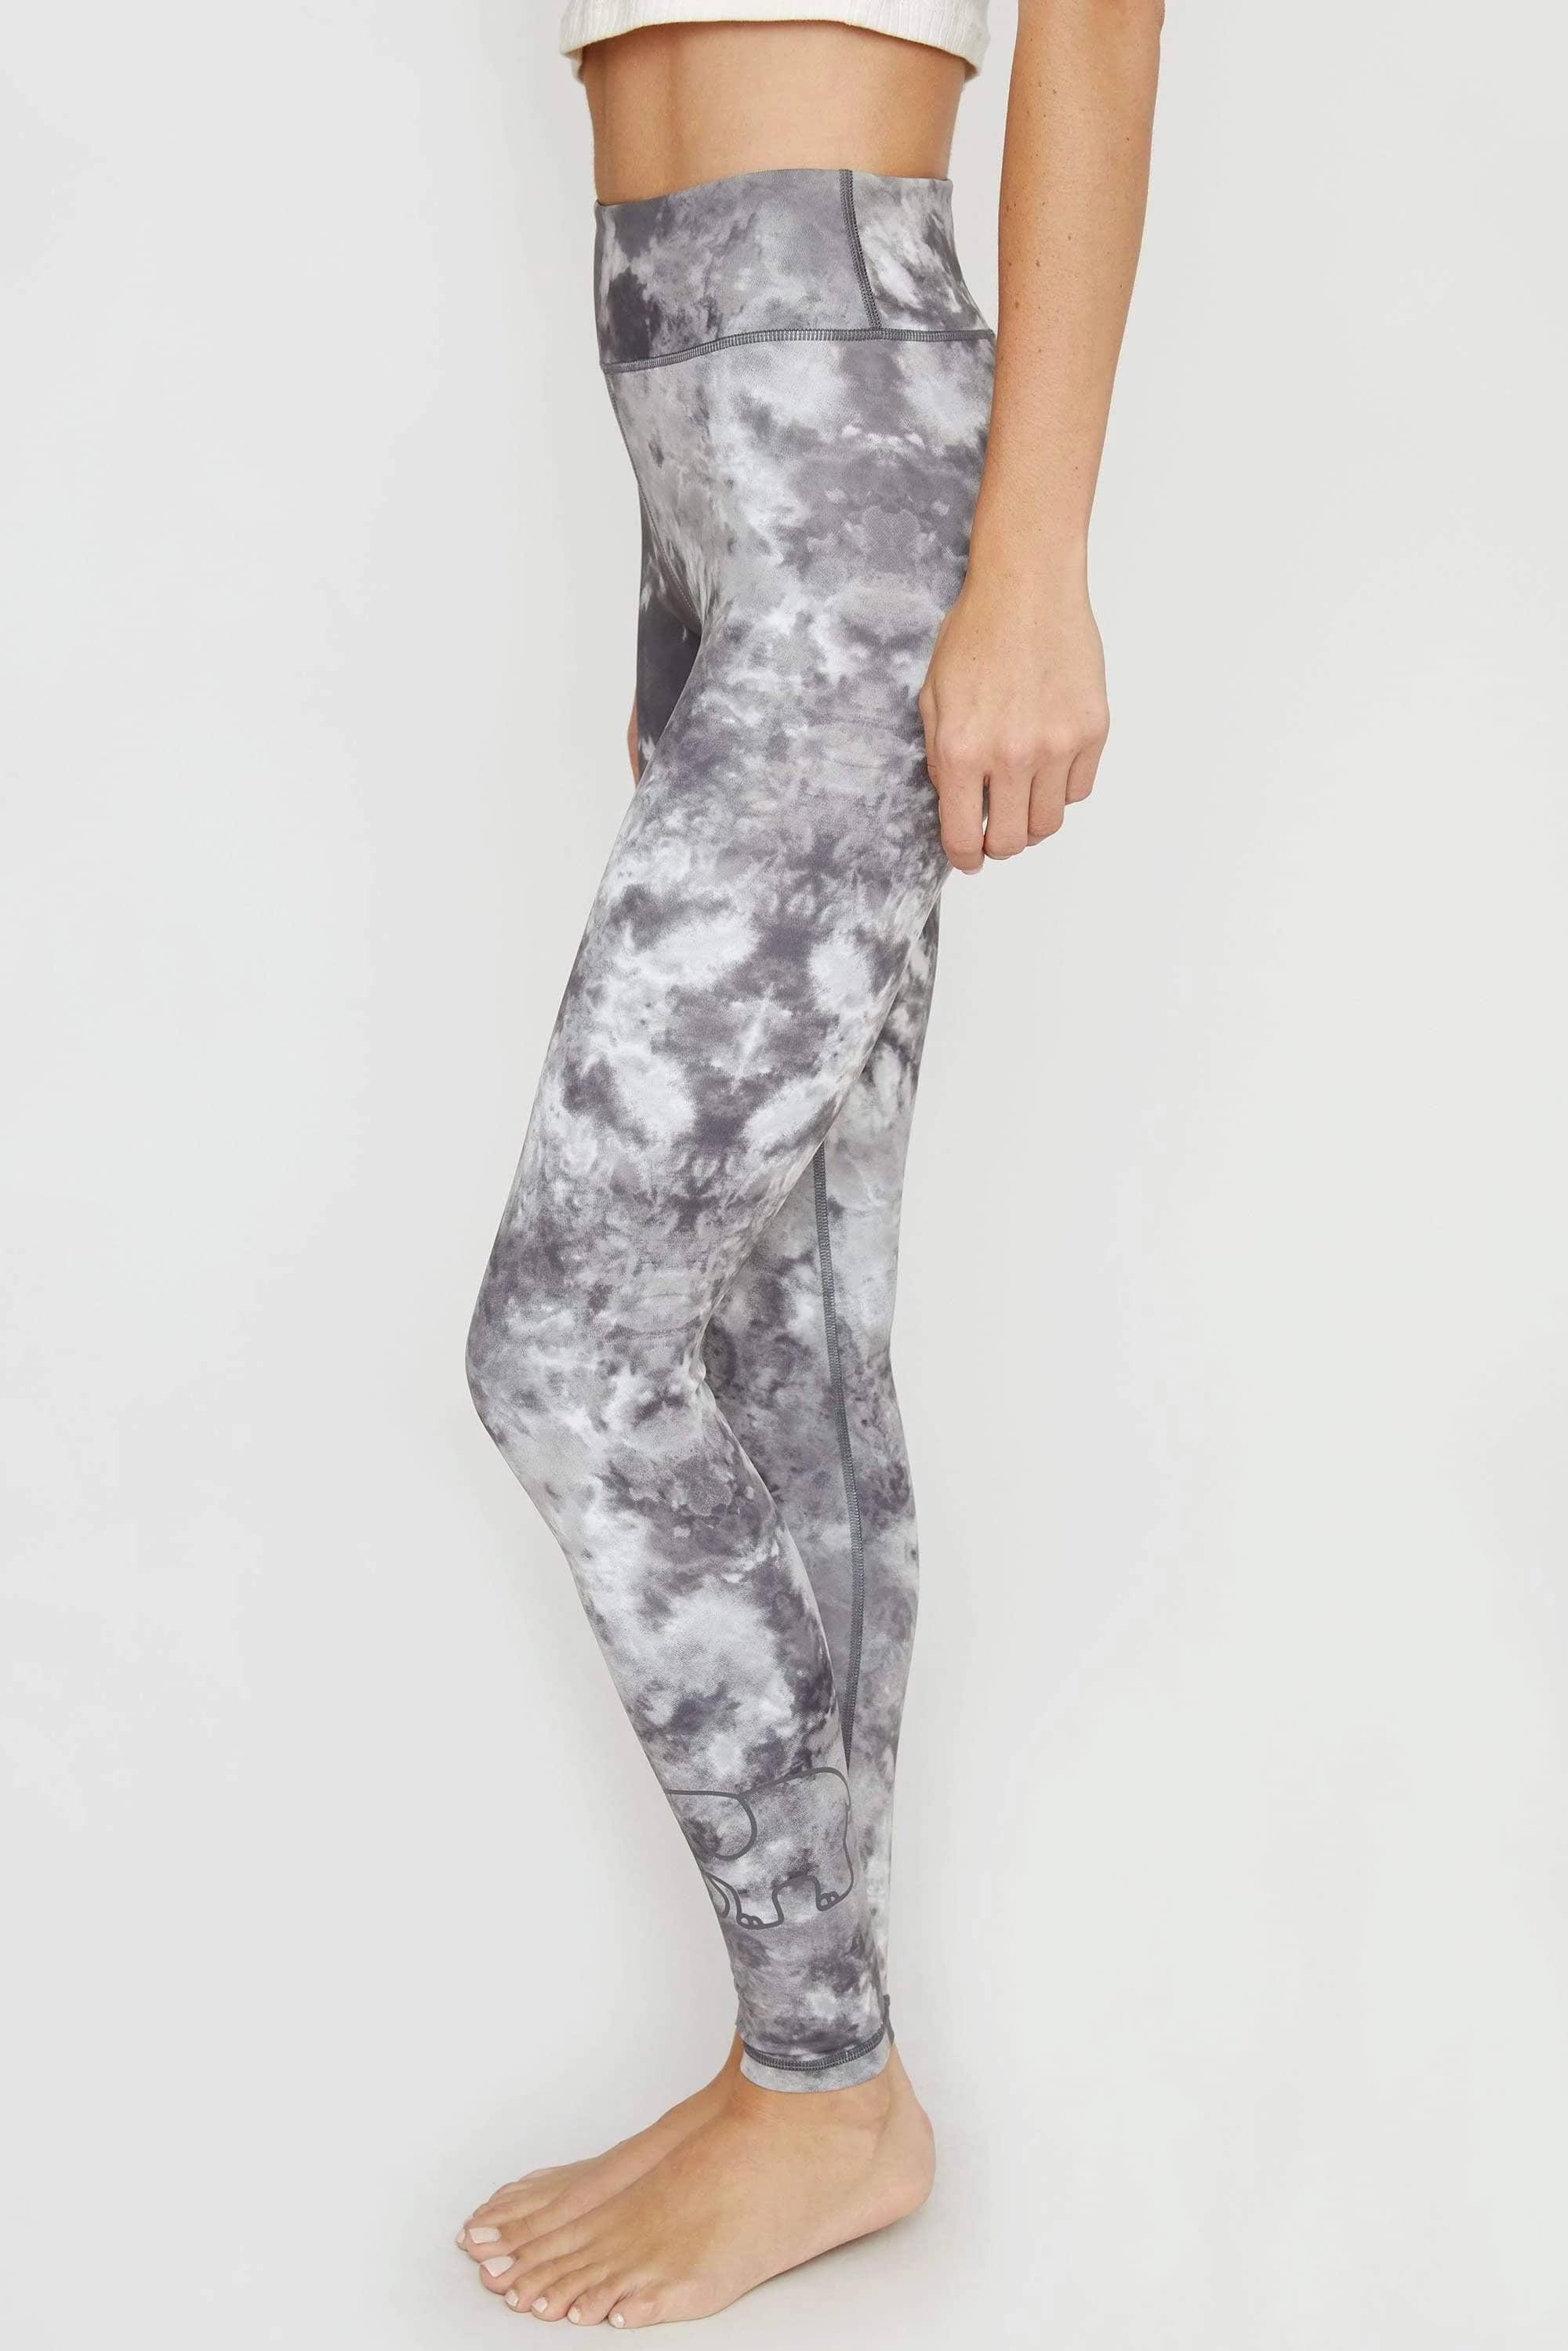 Dark Grey Acid Wash Recycled Legging - Ivory Ella - Women's Bottoms